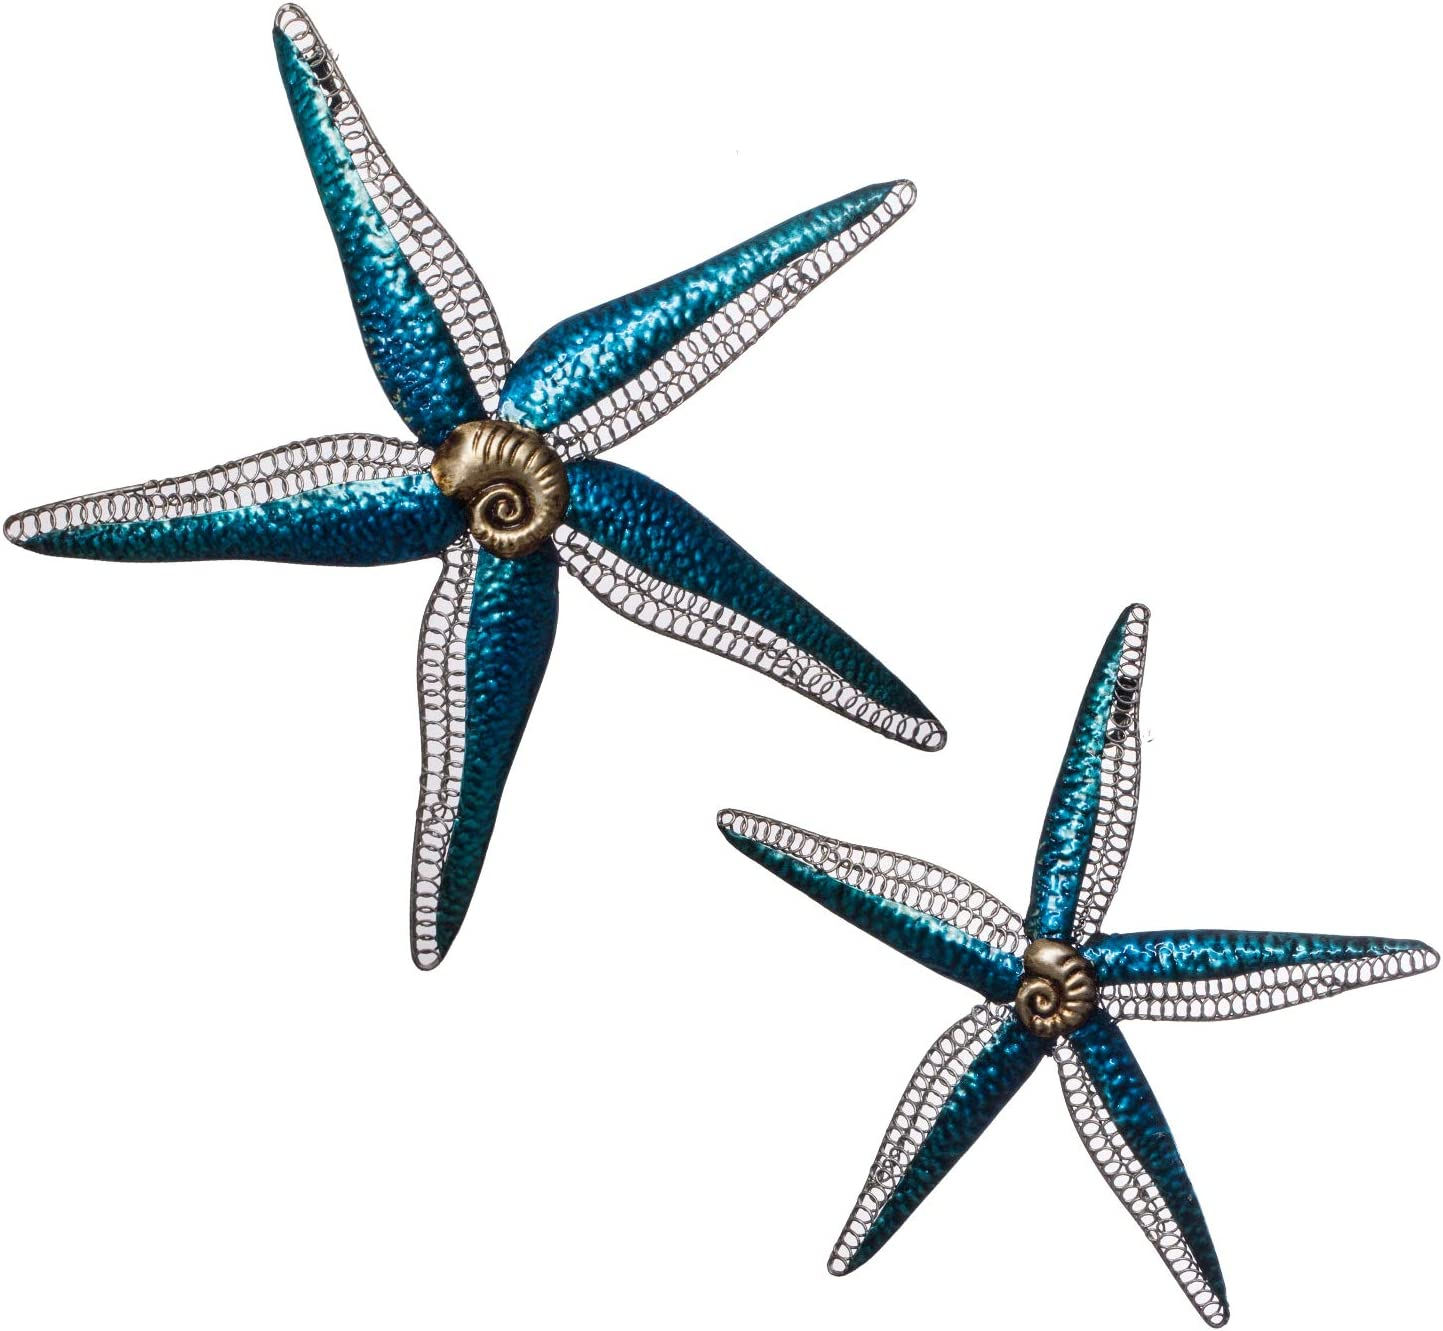 "The Creative Critters Starfish Wall Decor -Set of 2- Lg & Sm - Perfect for That Special Occasion Gift - 3D Metal Wall Art - Hand-Painted - Large-15"" Small- 11"